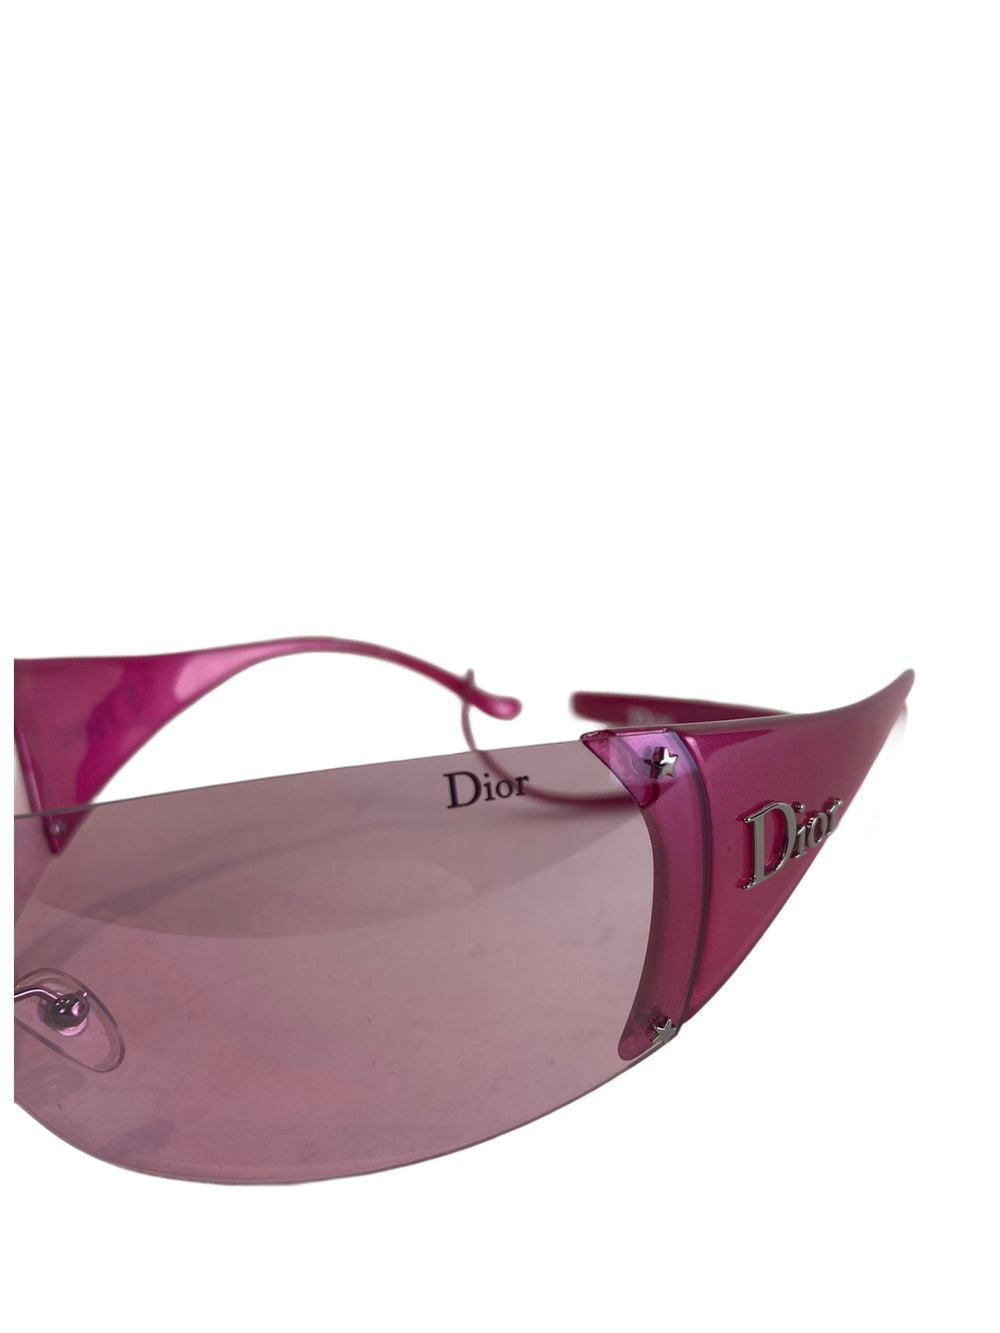 Christian Dior Wrap Around Sunglasses